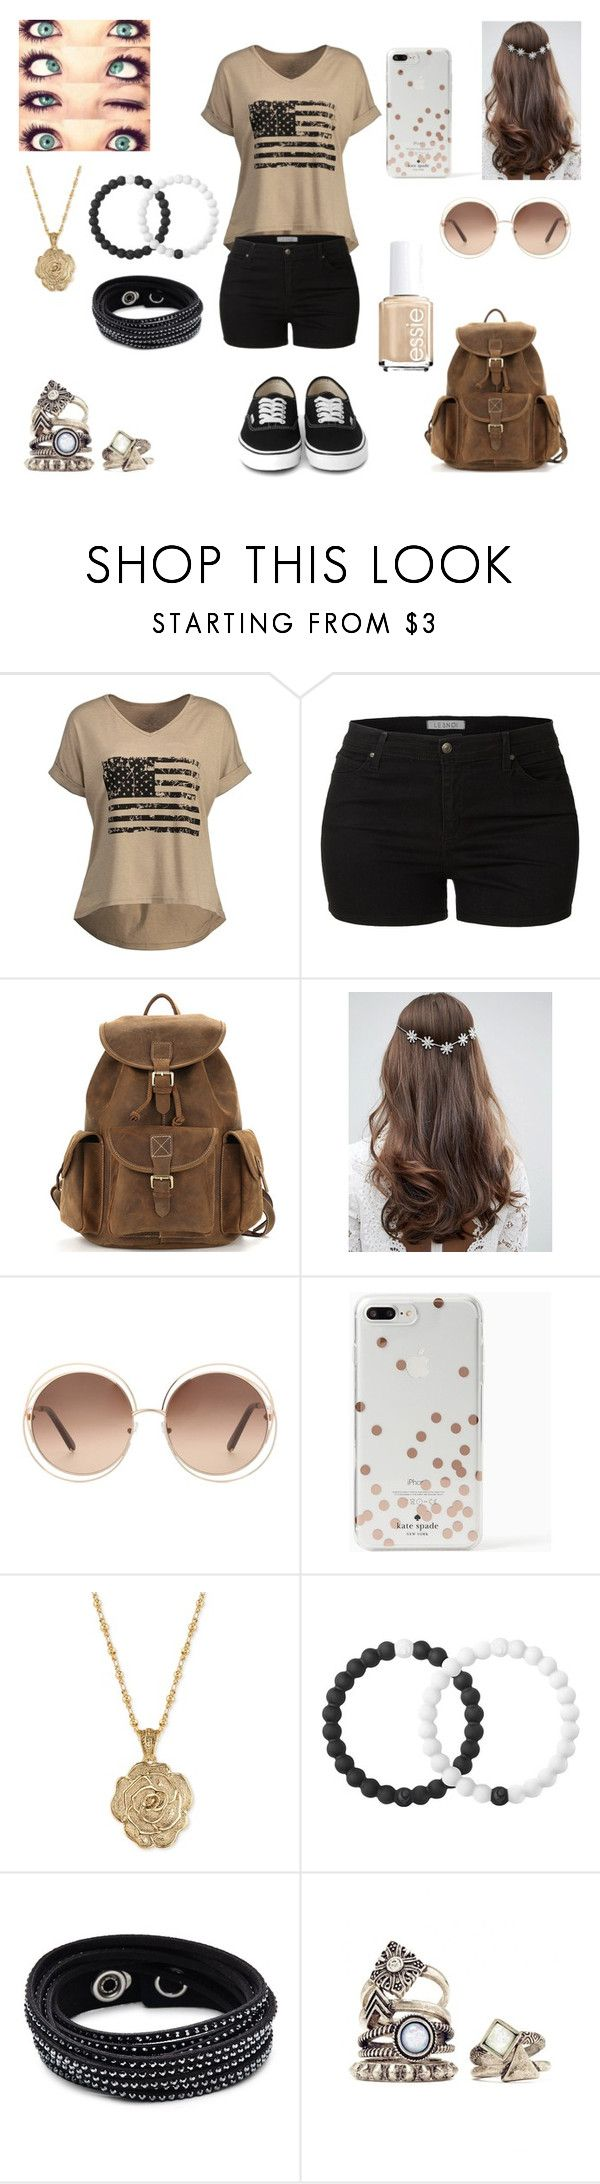 """Anerican Girl"" by foxydeadpool on Polyvore featuring LE3NO, ASOS, Chloé, Kate Spade, 2028, Lokai and Swarovski"